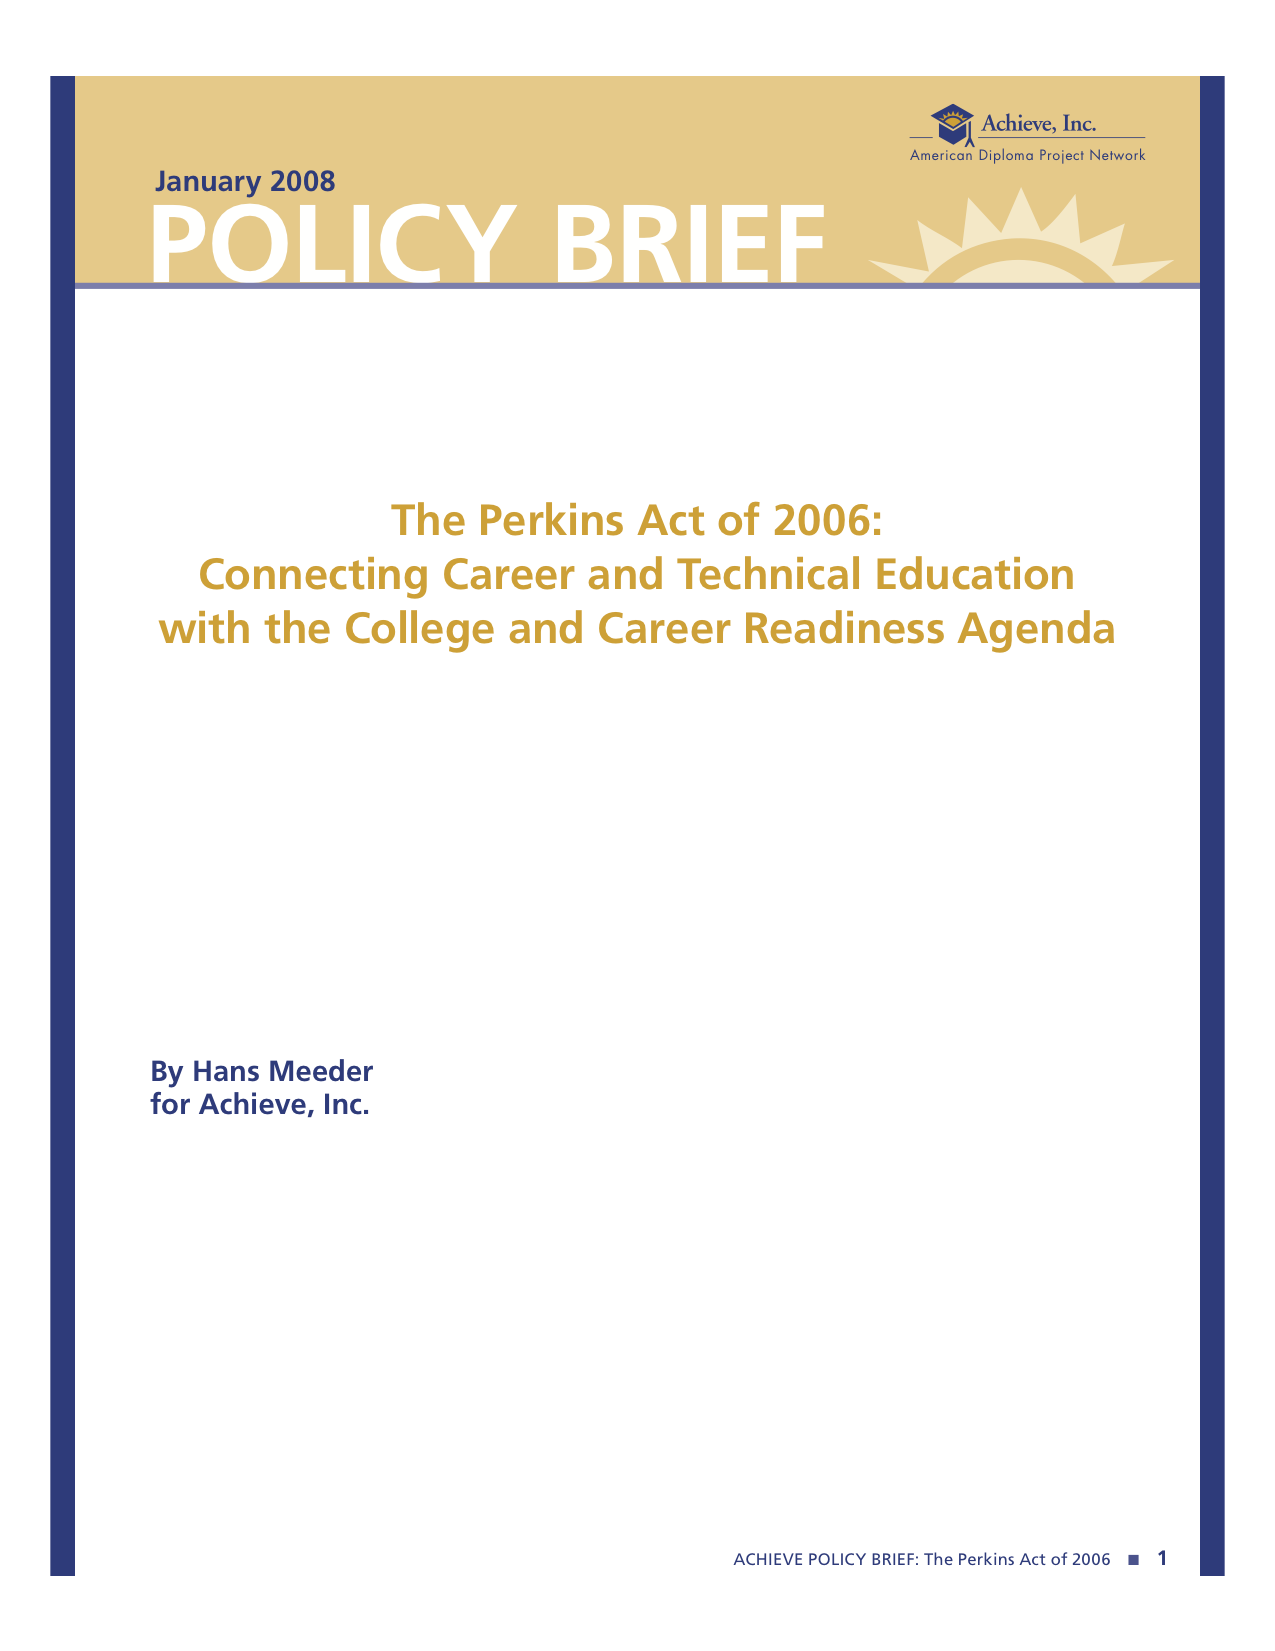 Cover of The Perkins Act of 2006: Connecting Career and Technical Education with the College and Career Readiness Agenda